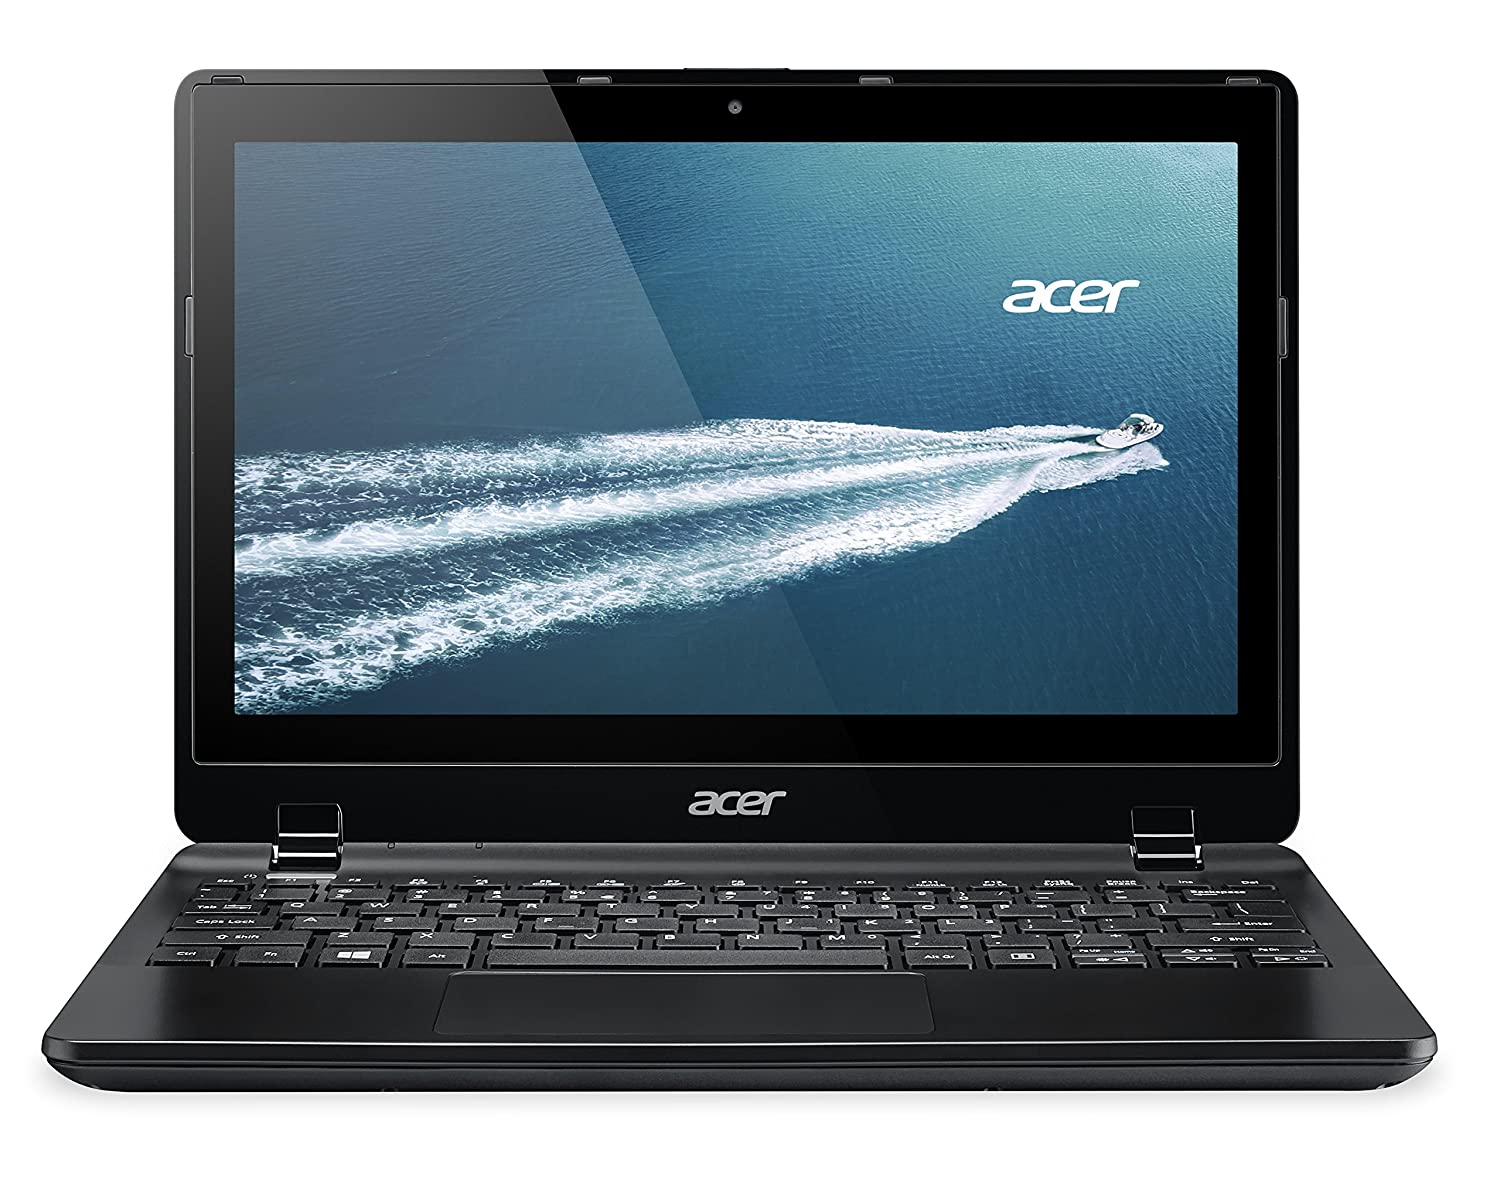 Acer Travelmate B116-M-P16S 11 Zoll Notebook